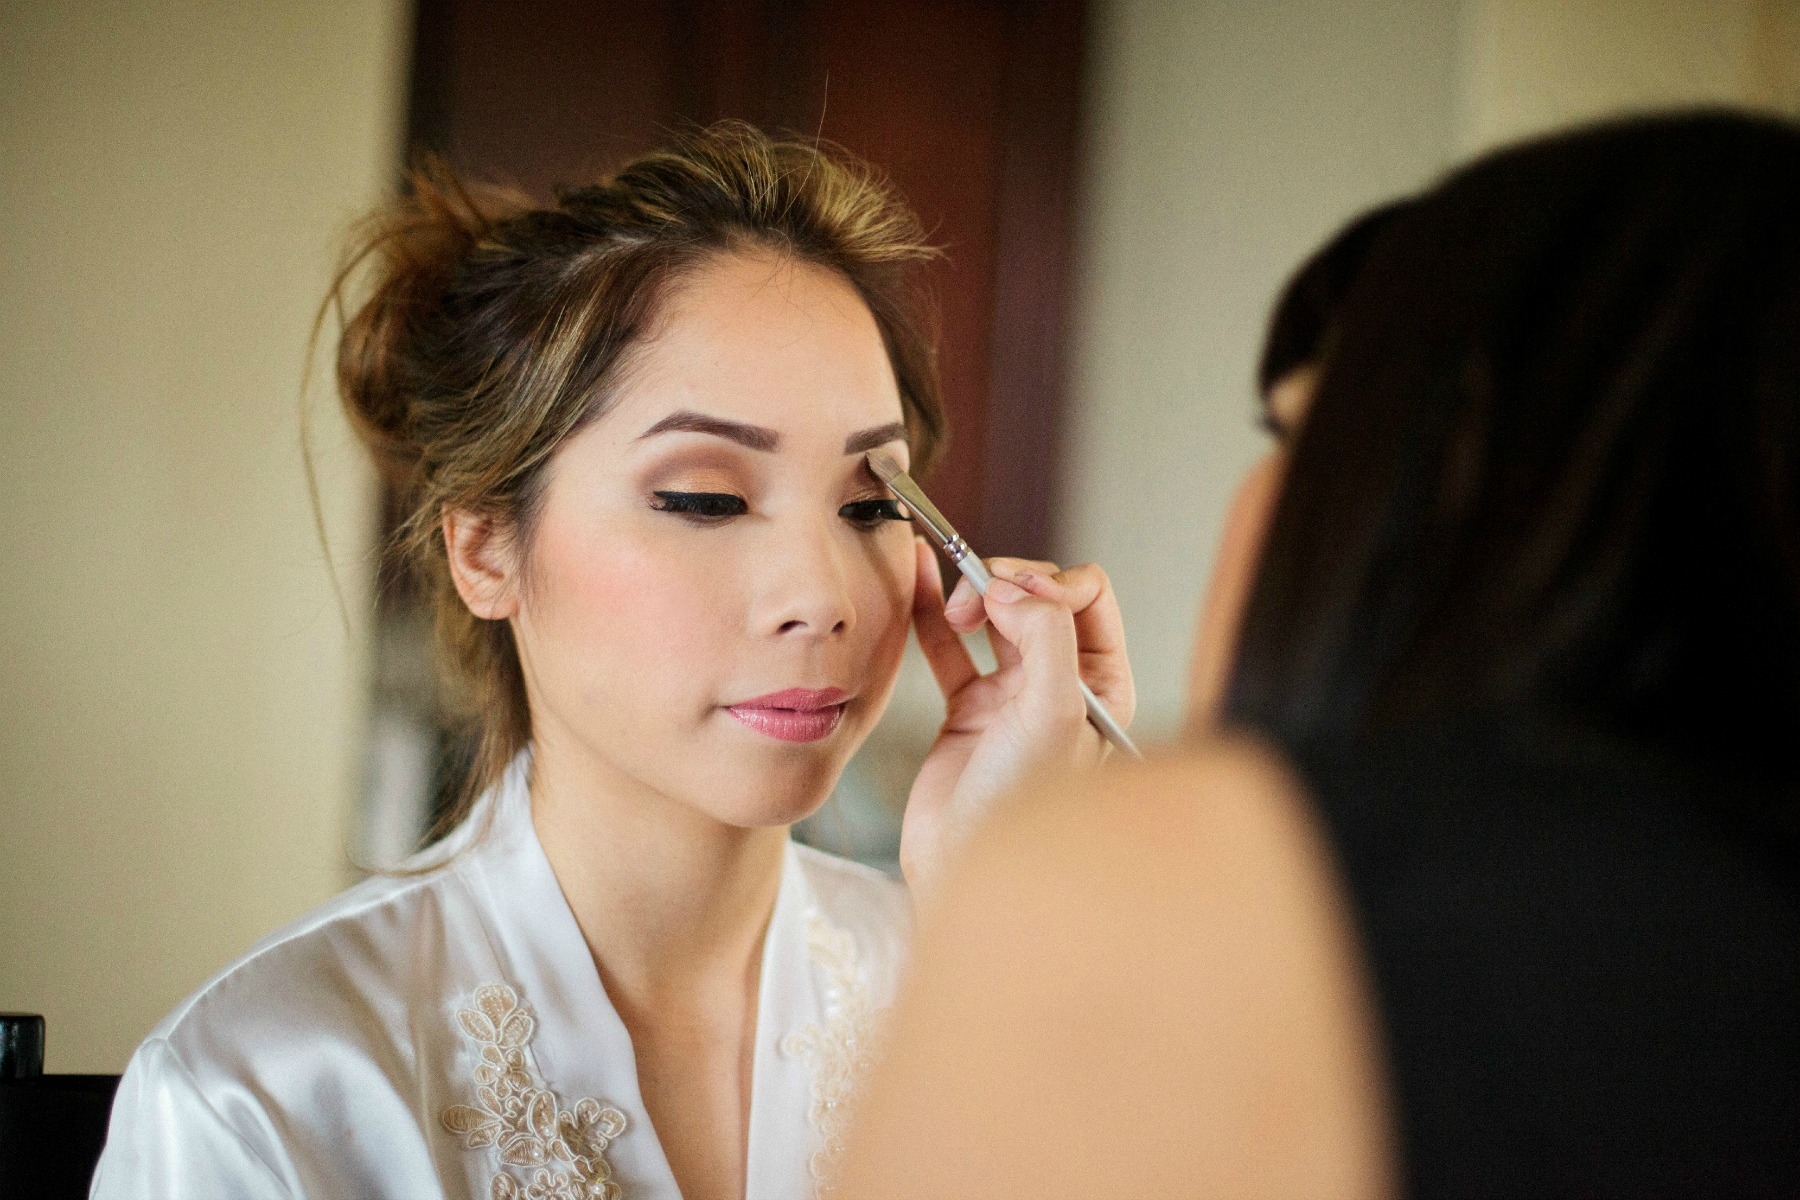 makeup artist putting eyeshadow on the bride